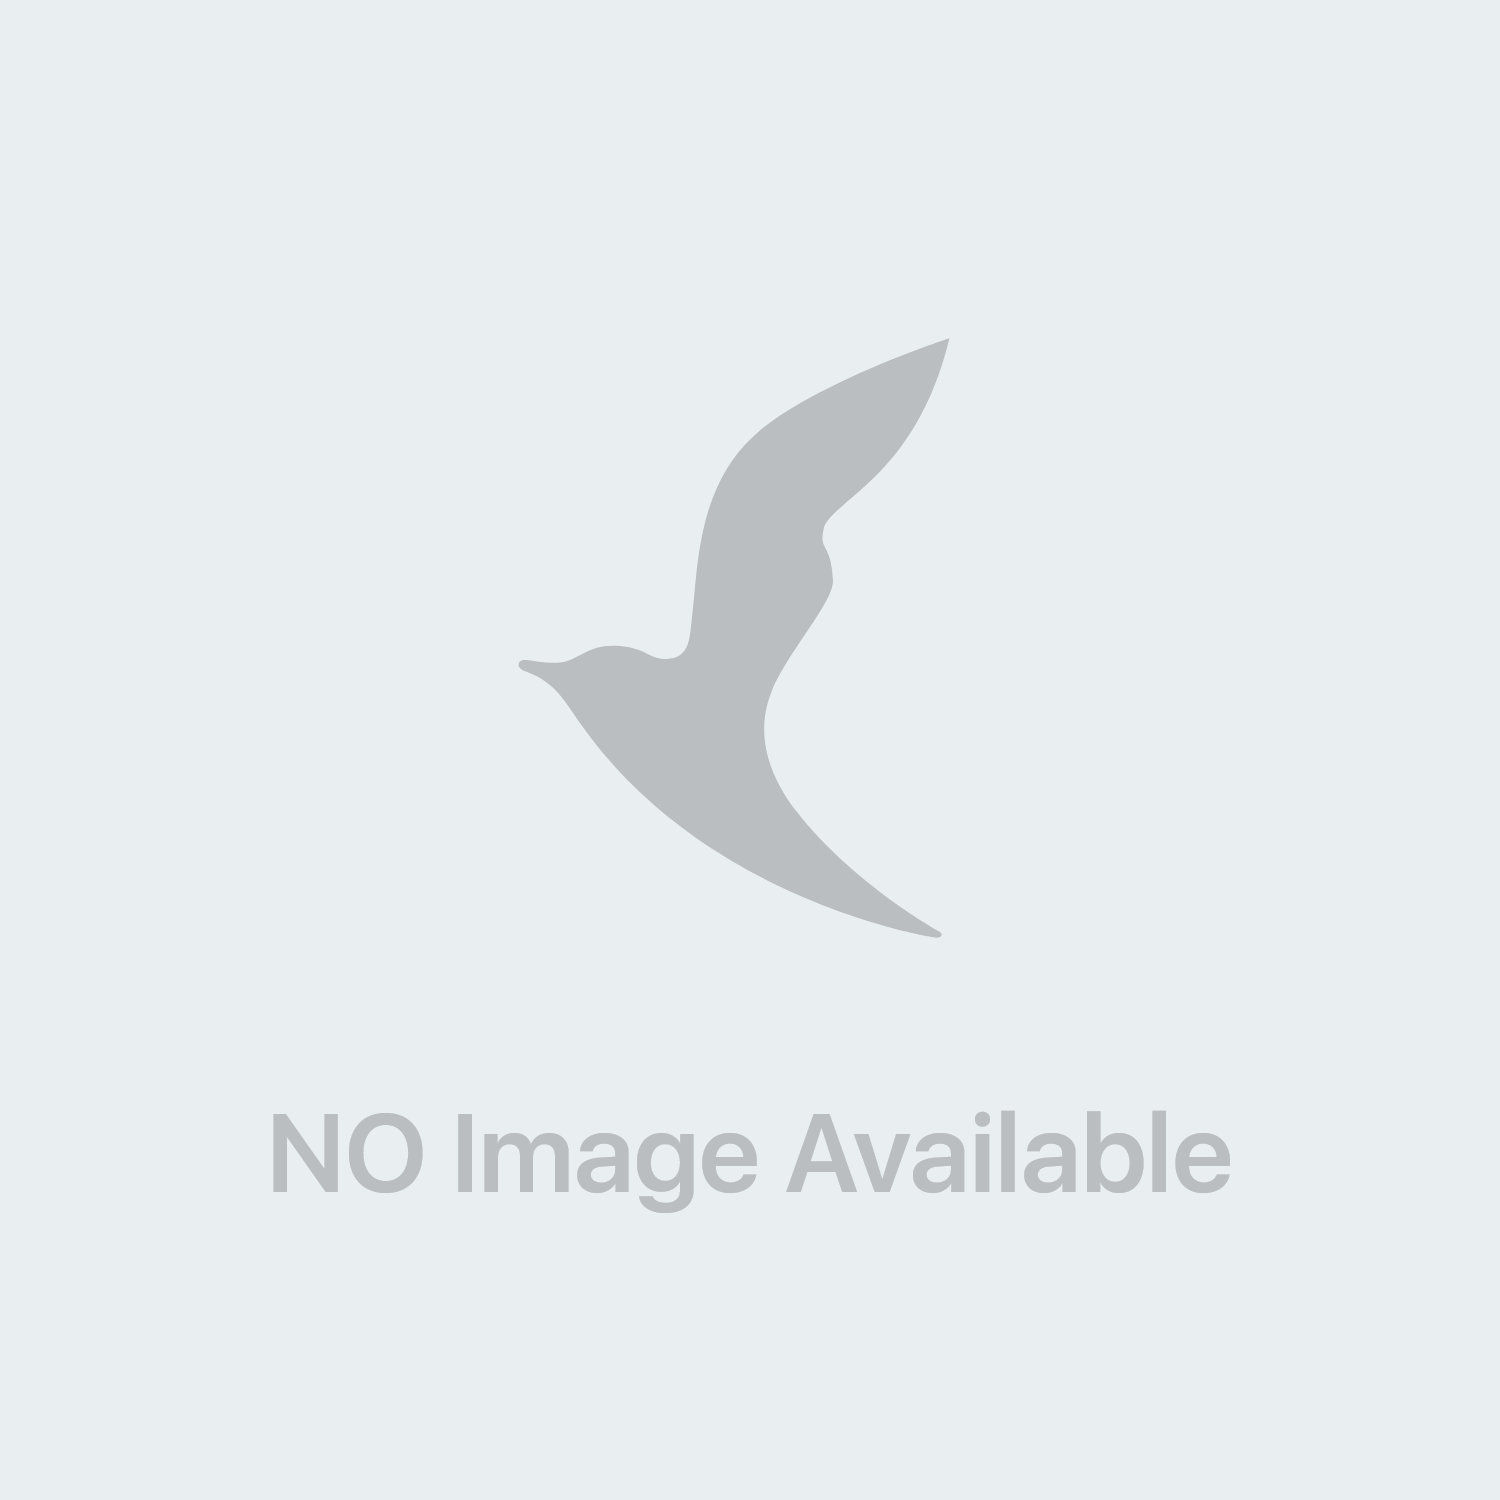 Ensure Nutrivigor Gusto Vaniglia 4X200 ml